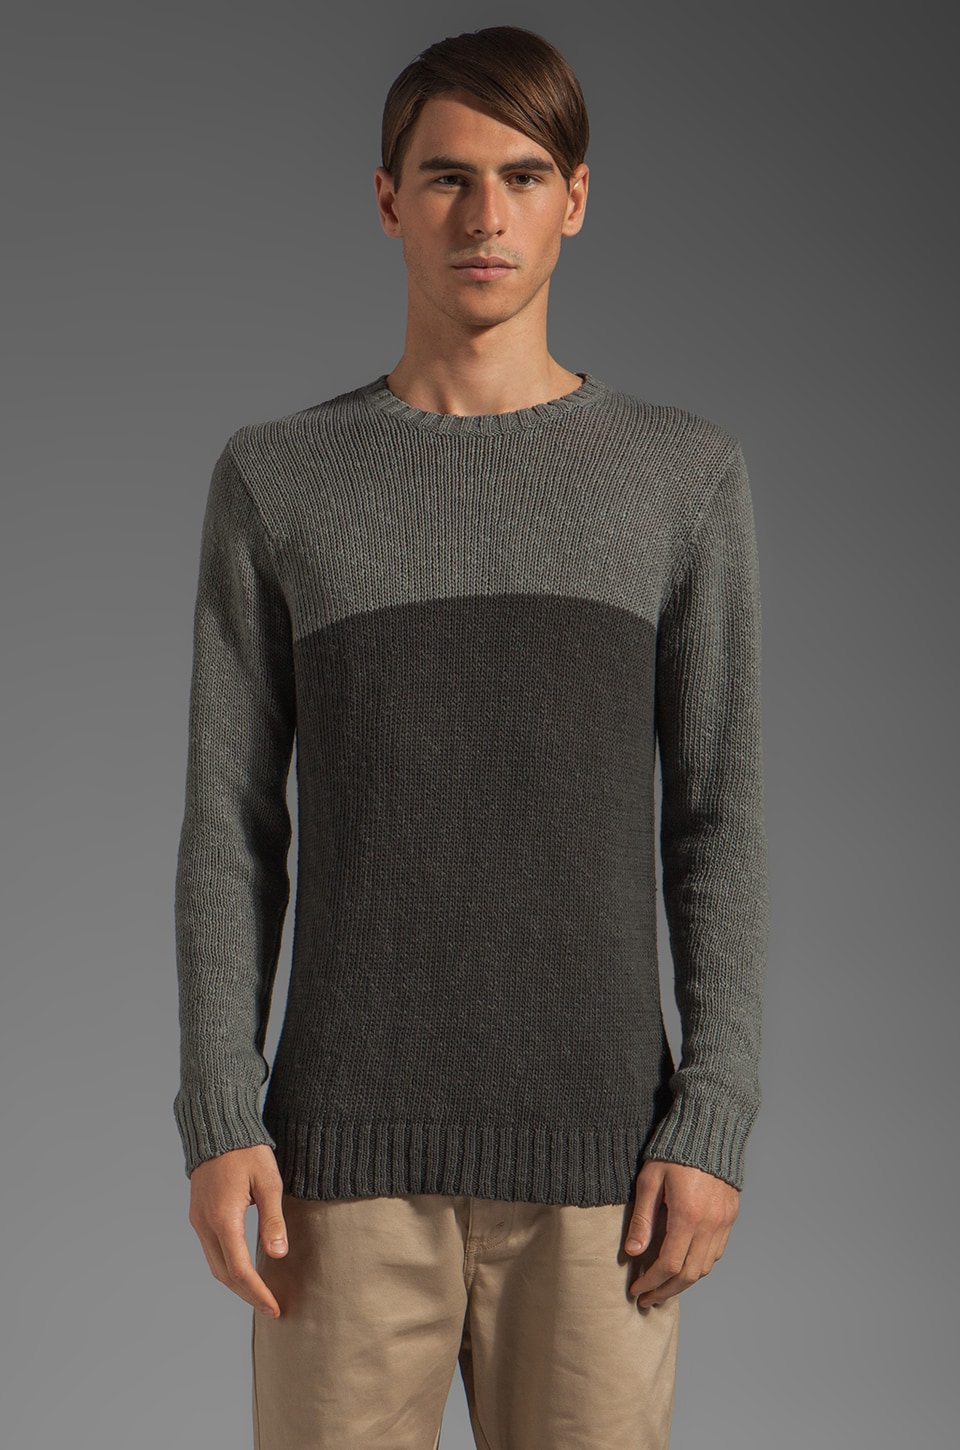 V.S.T.R Stow Away Sweater in Charcoal